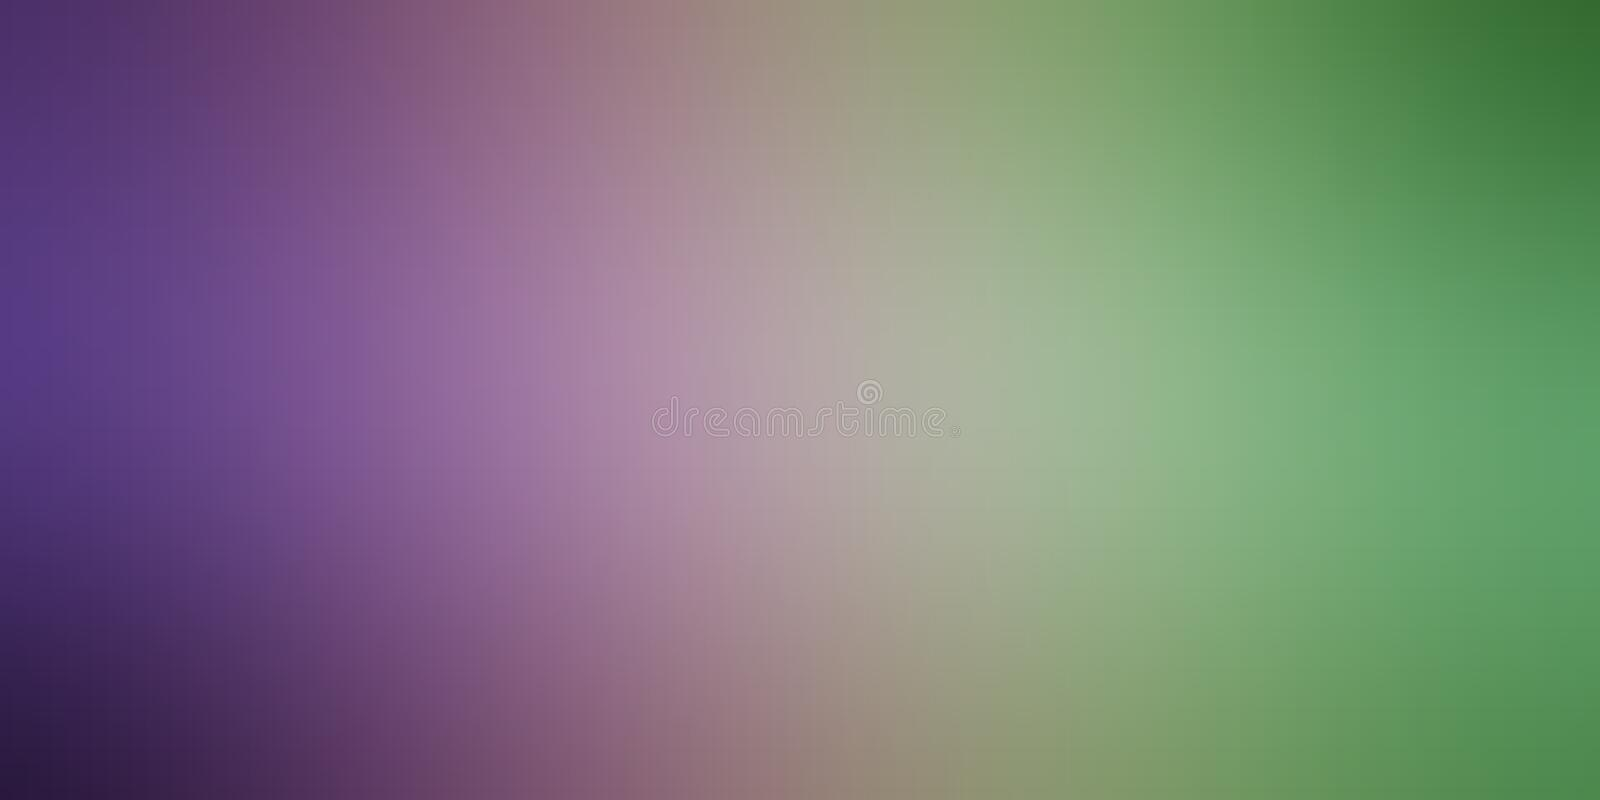 Blue pastel colors abstract blur background wallpaper, vector illustration. royalty free illustration